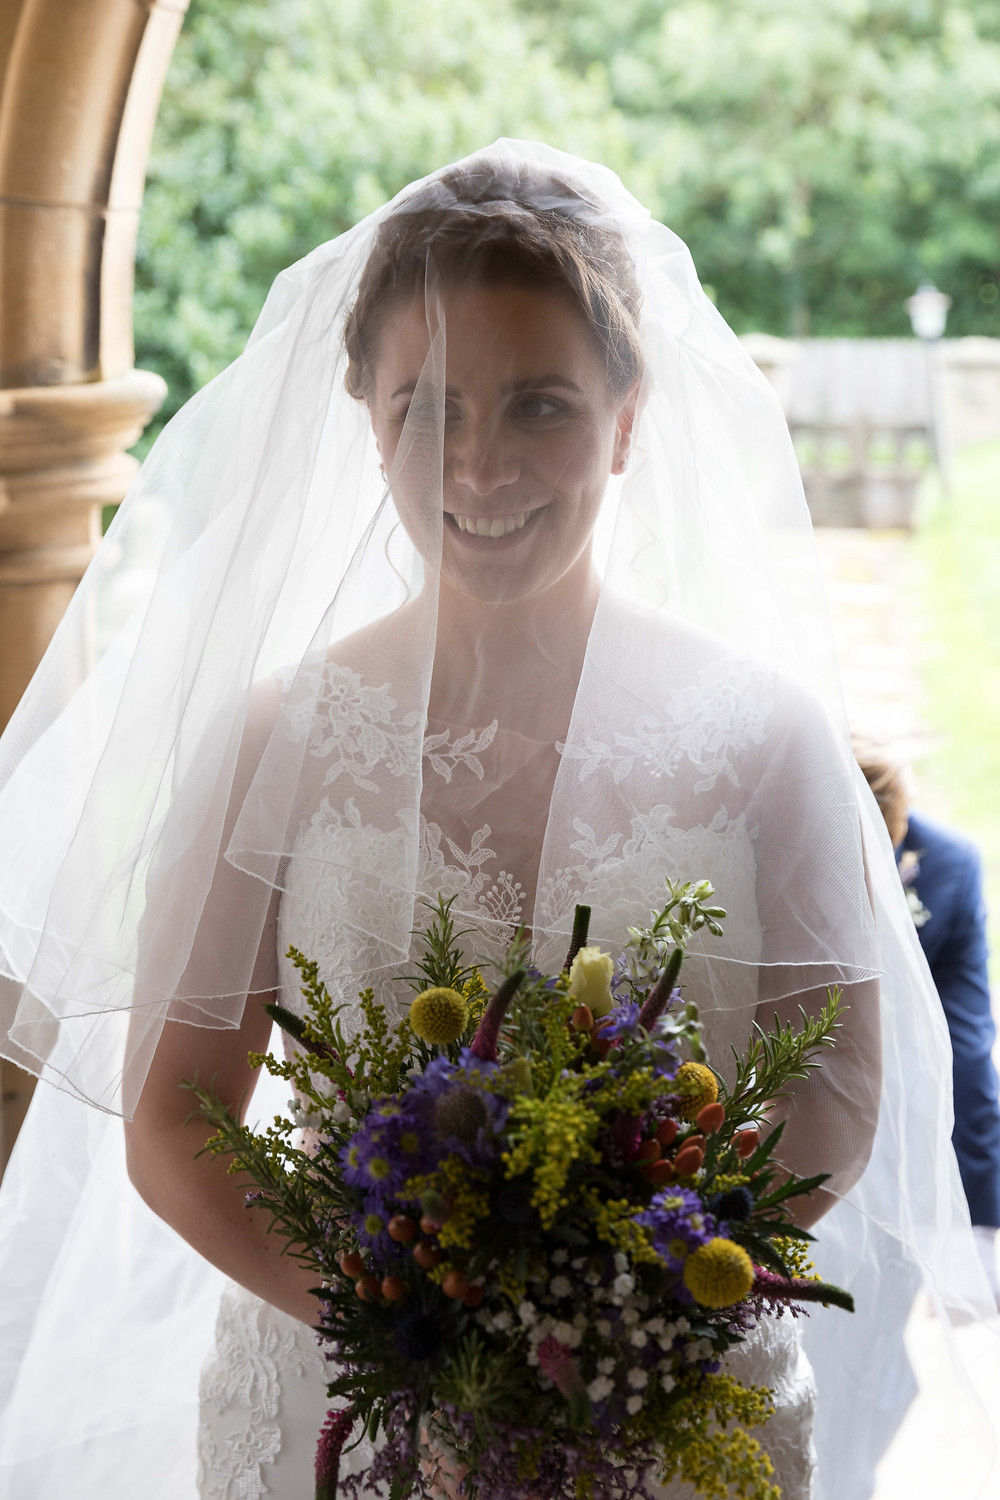 The bride smiling by Yorkshire wedding photographer